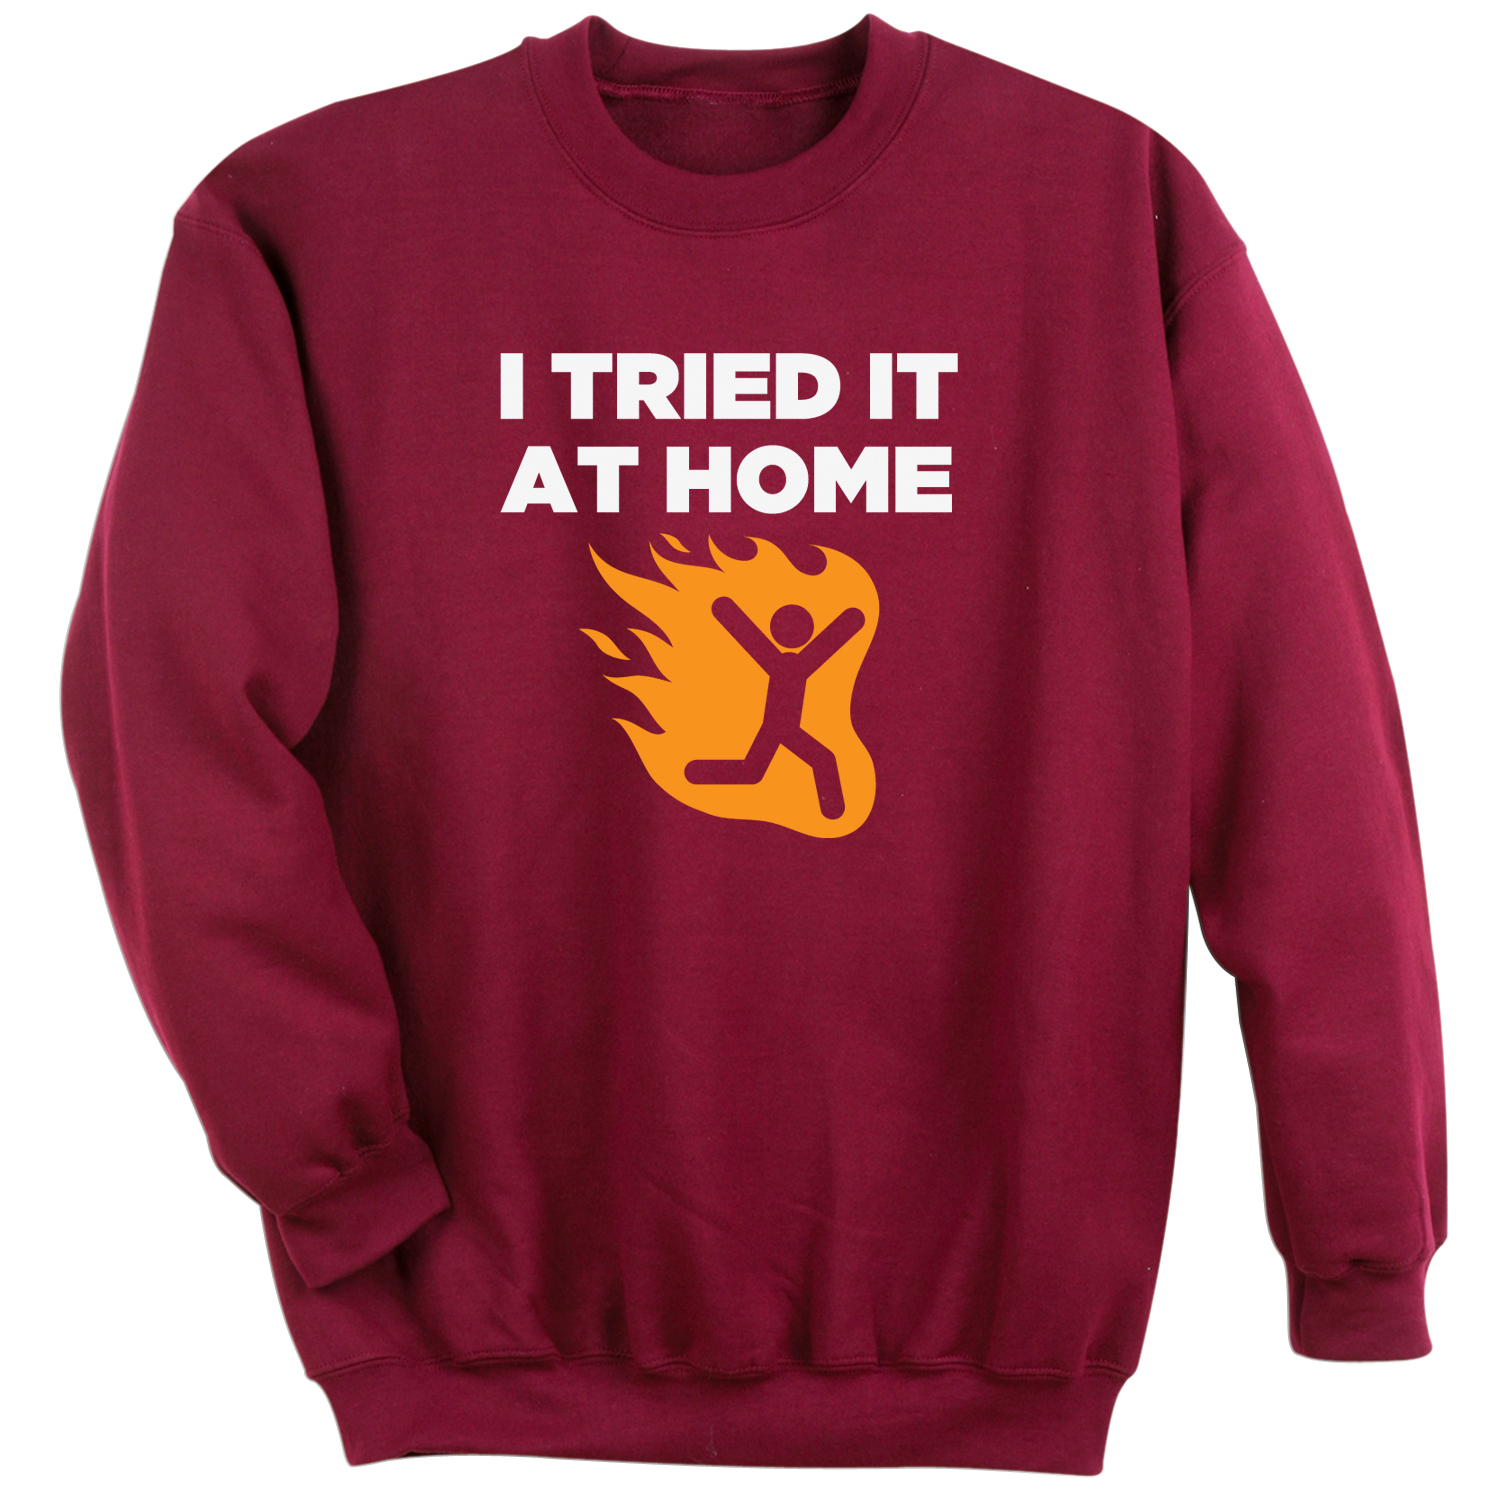 Unisex-Adult Funny - I Tried It At Home - Man On Fire Shirt - Sweatshirt